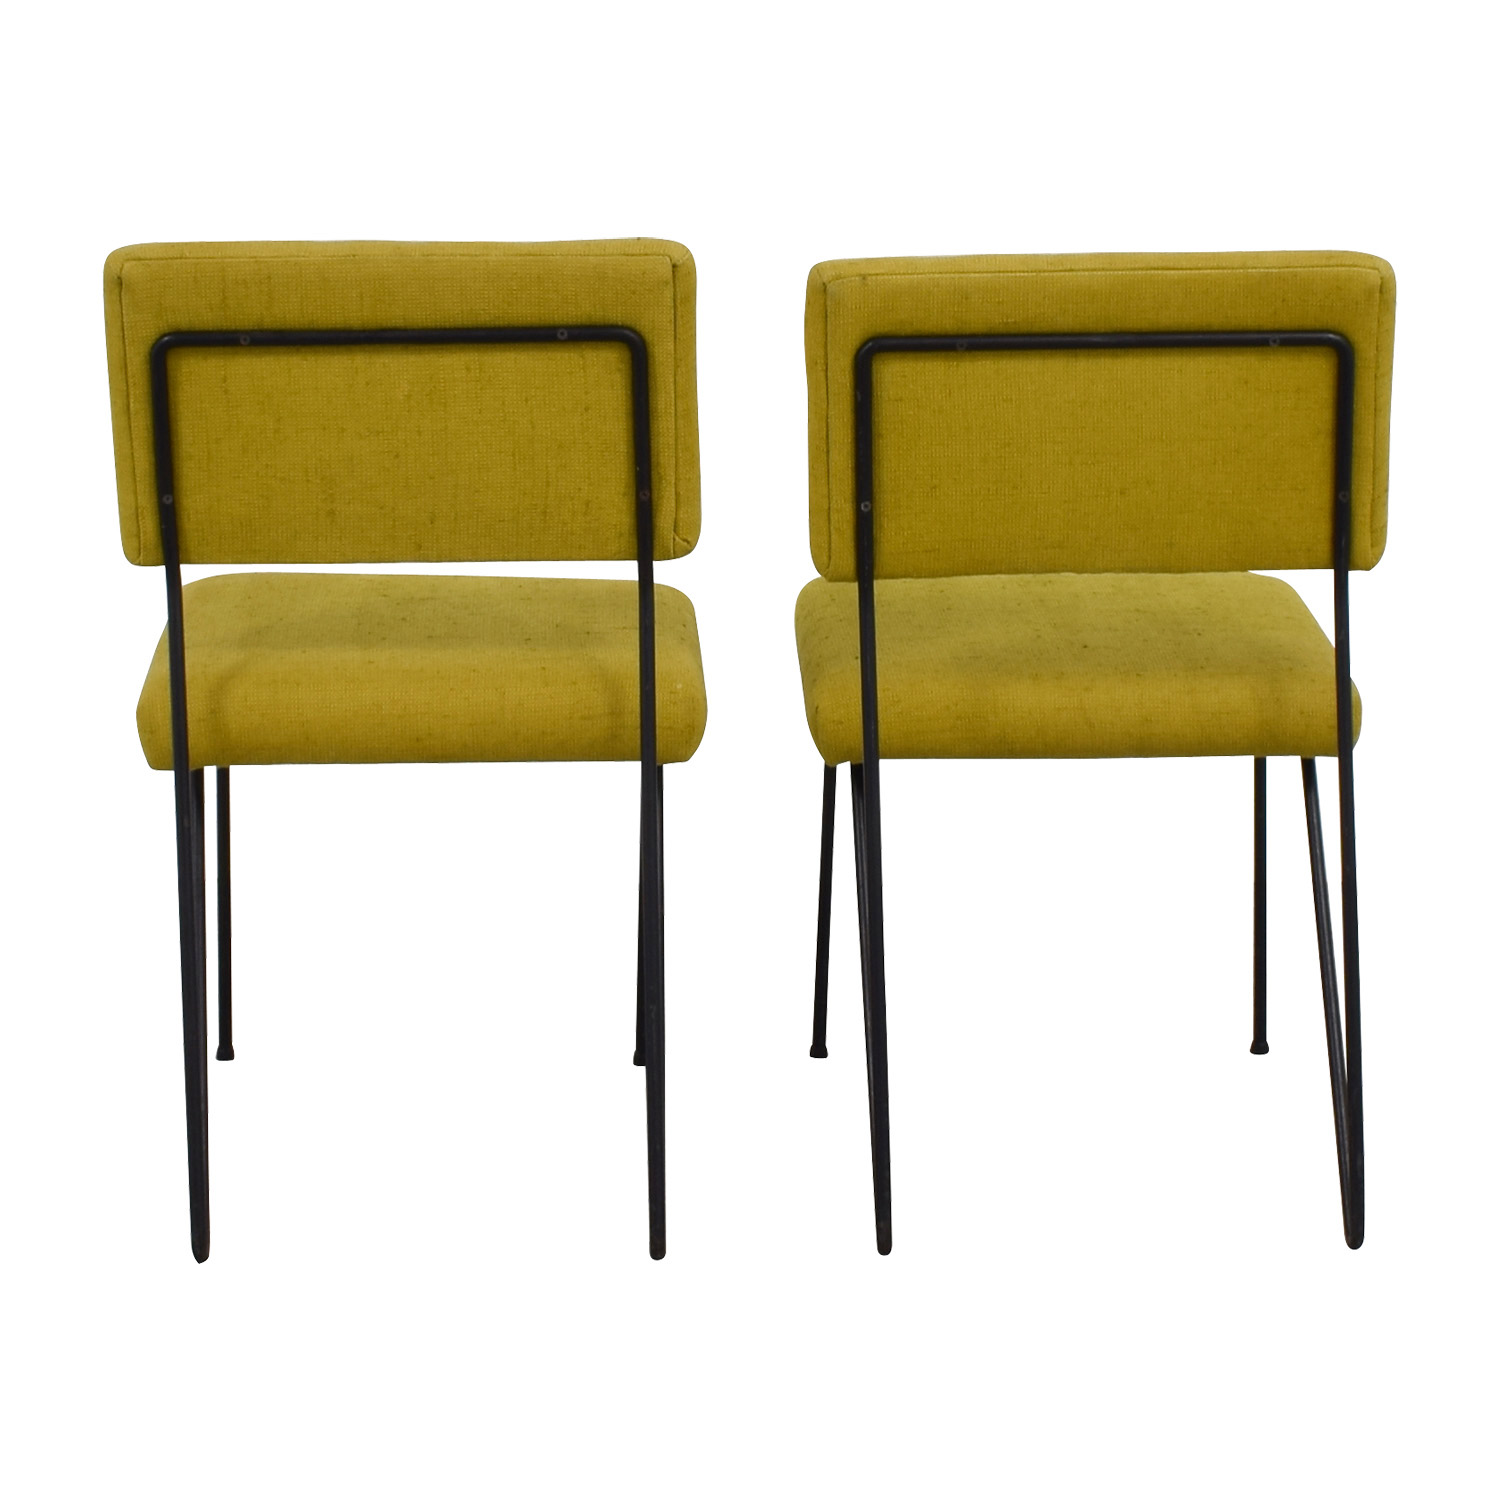 Furniture Masters Furniture Masters Green Fabric and Metal Chairs nj